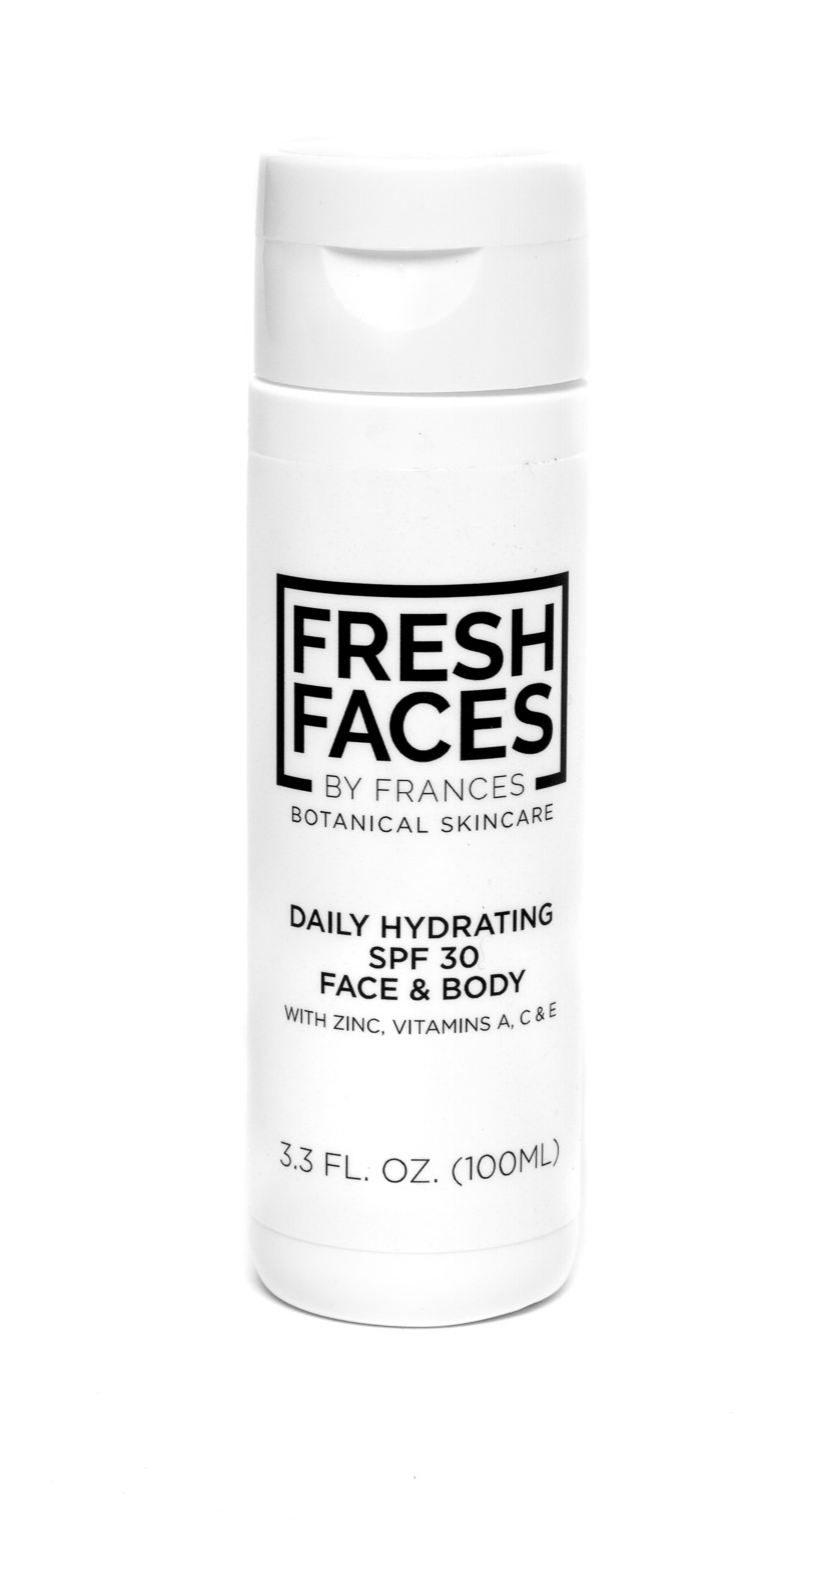 Daily Hydrating SPF30 Face & Body